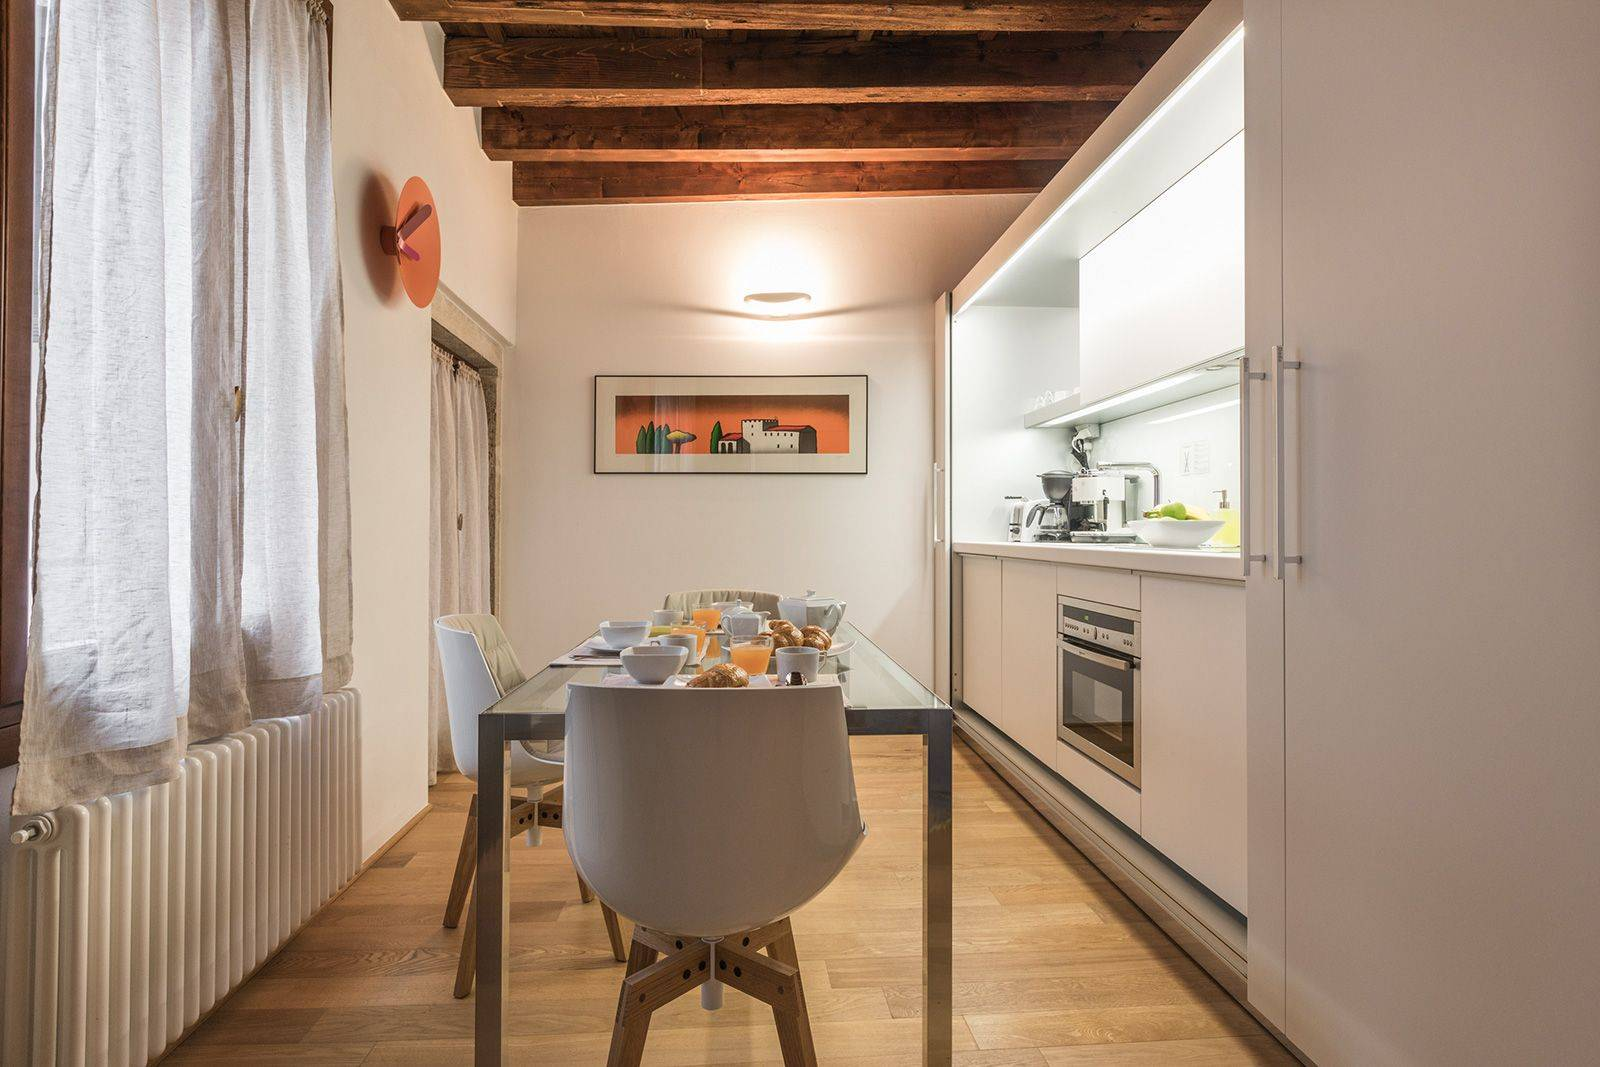 the kitchen can be hidden completely using sliding doors